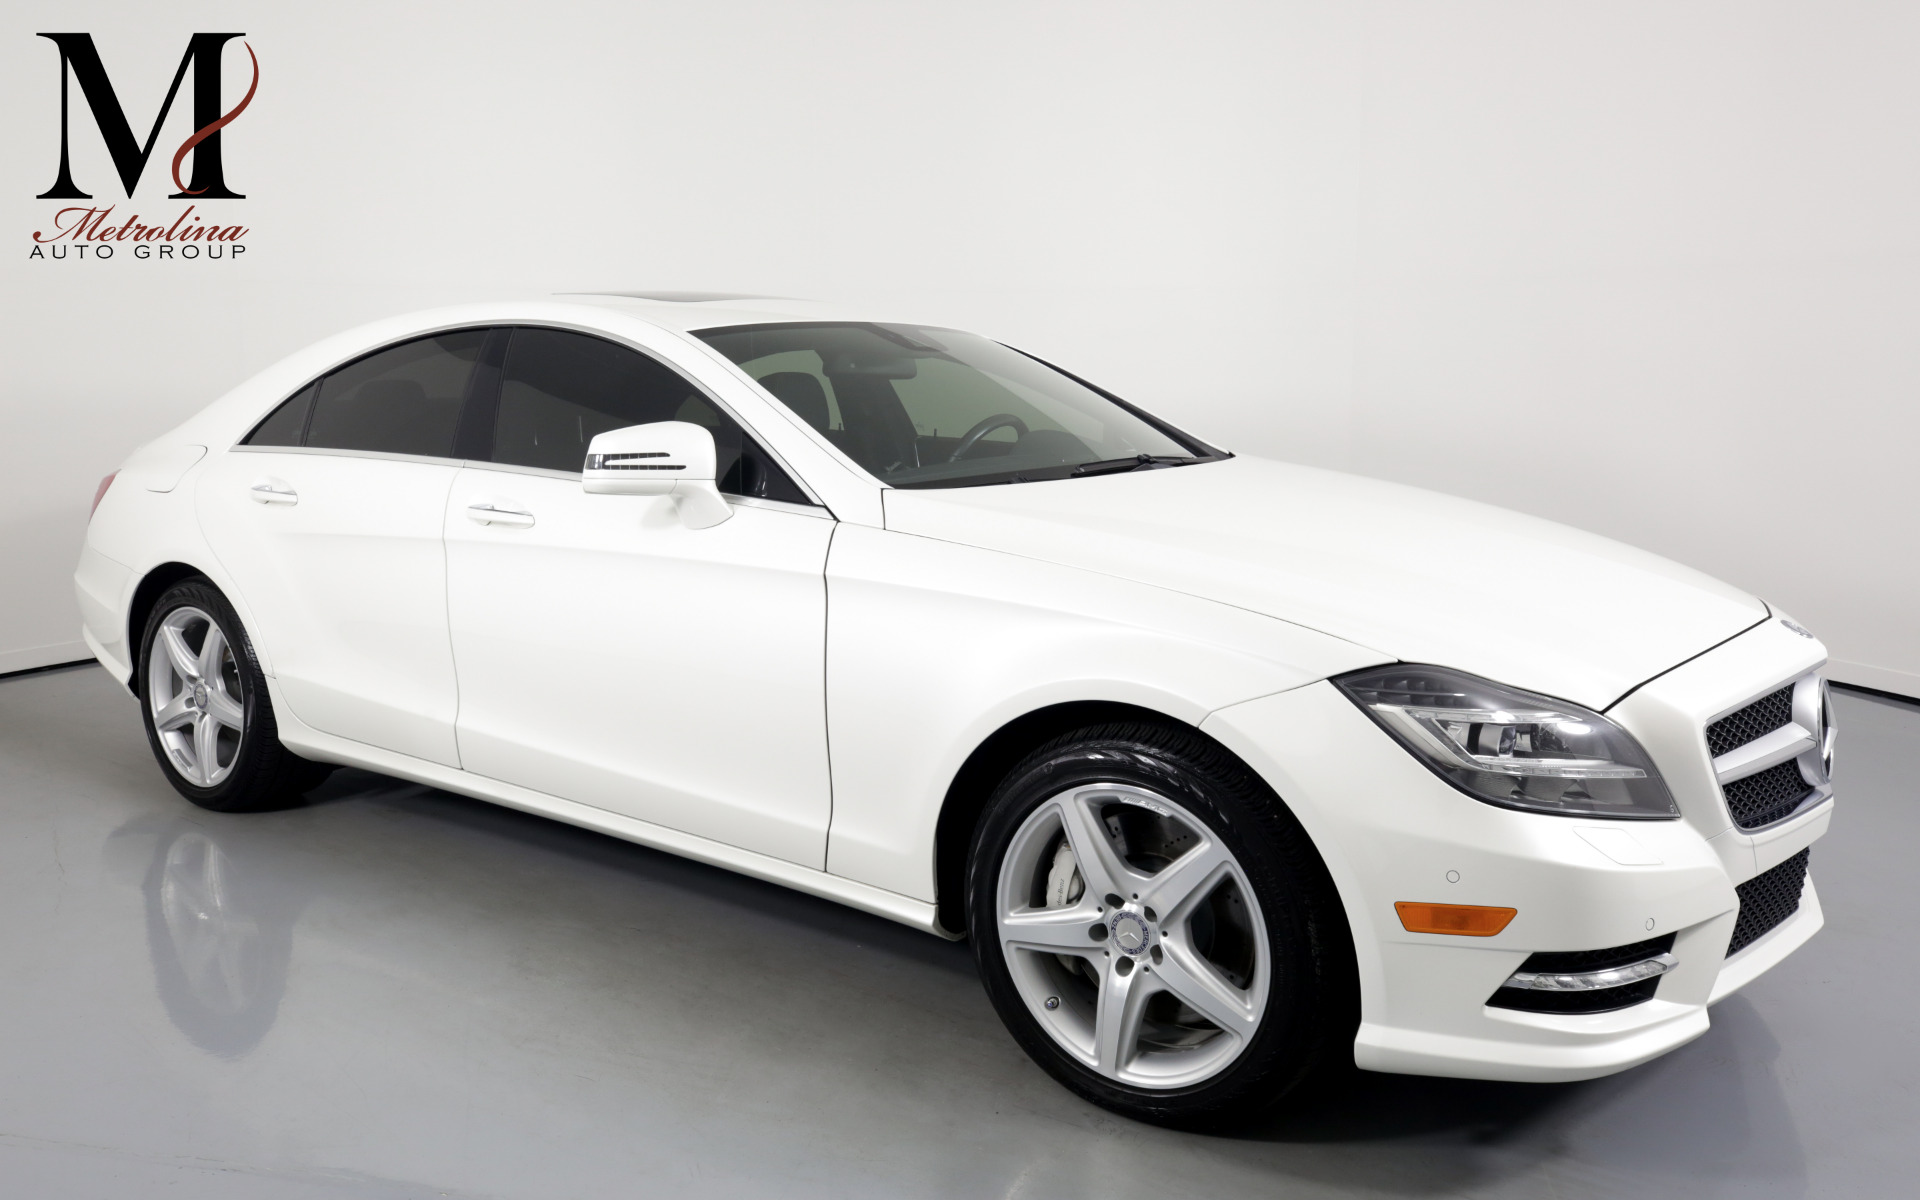 Used 2014 Mercedes-Benz CLS CLS 550 for sale Sold at Metrolina Auto Group in Charlotte NC 28217 - 1